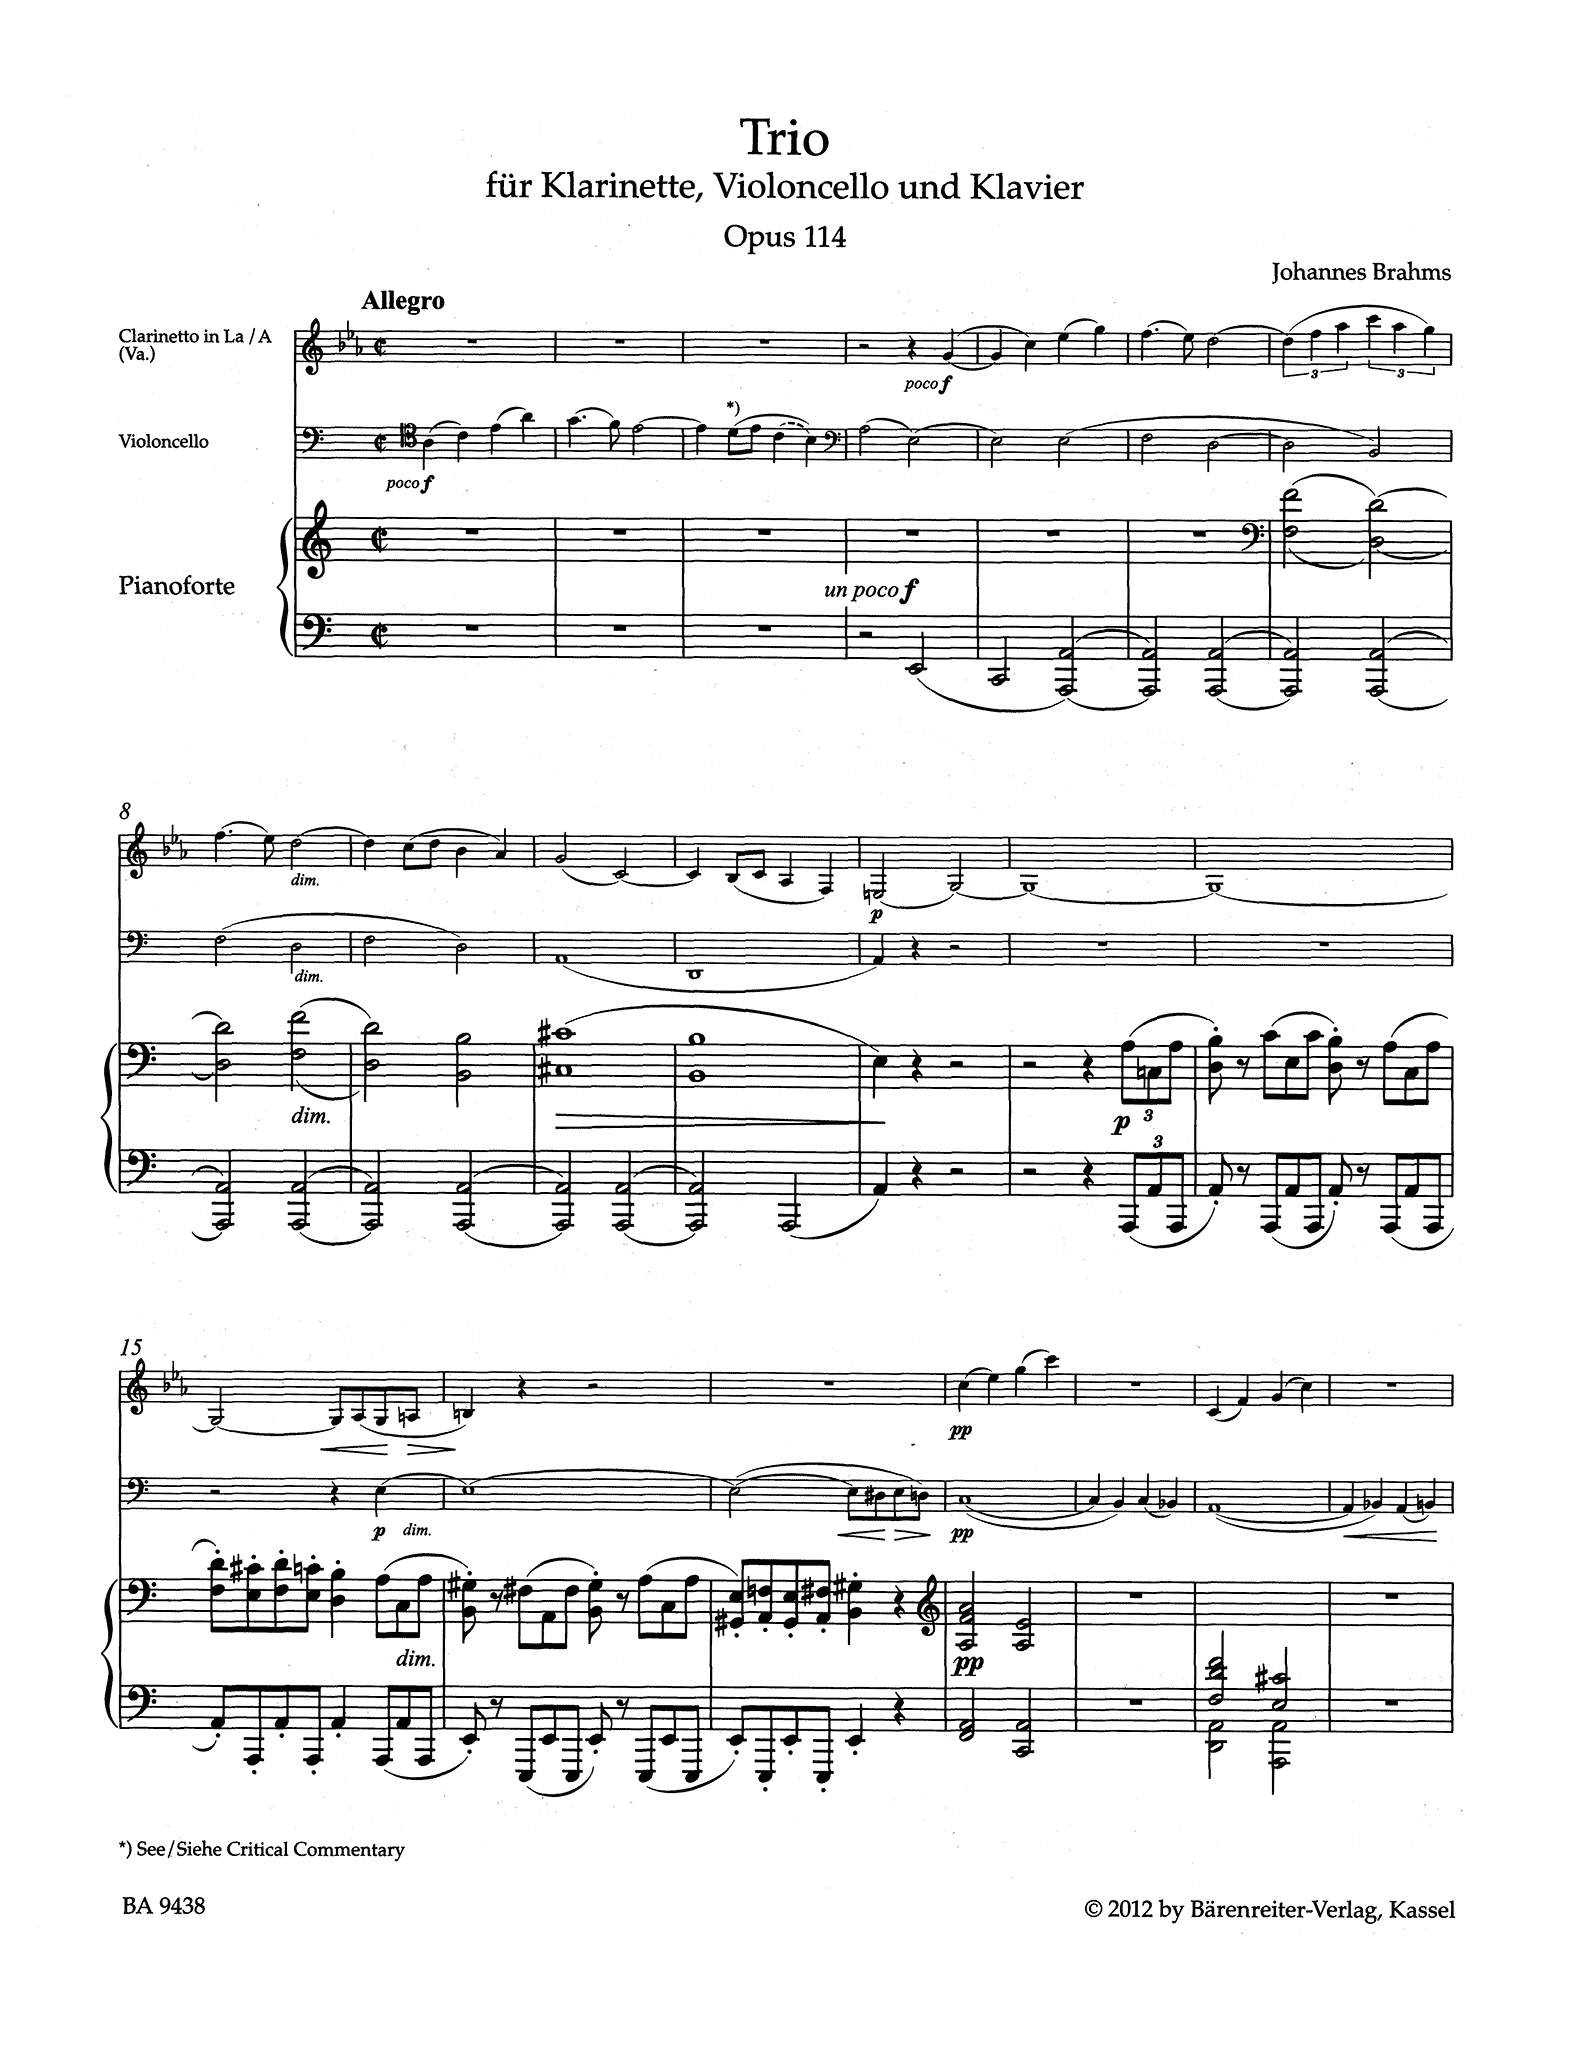 Clarinet Trio in A Minor, Op. 114 - Movement 1